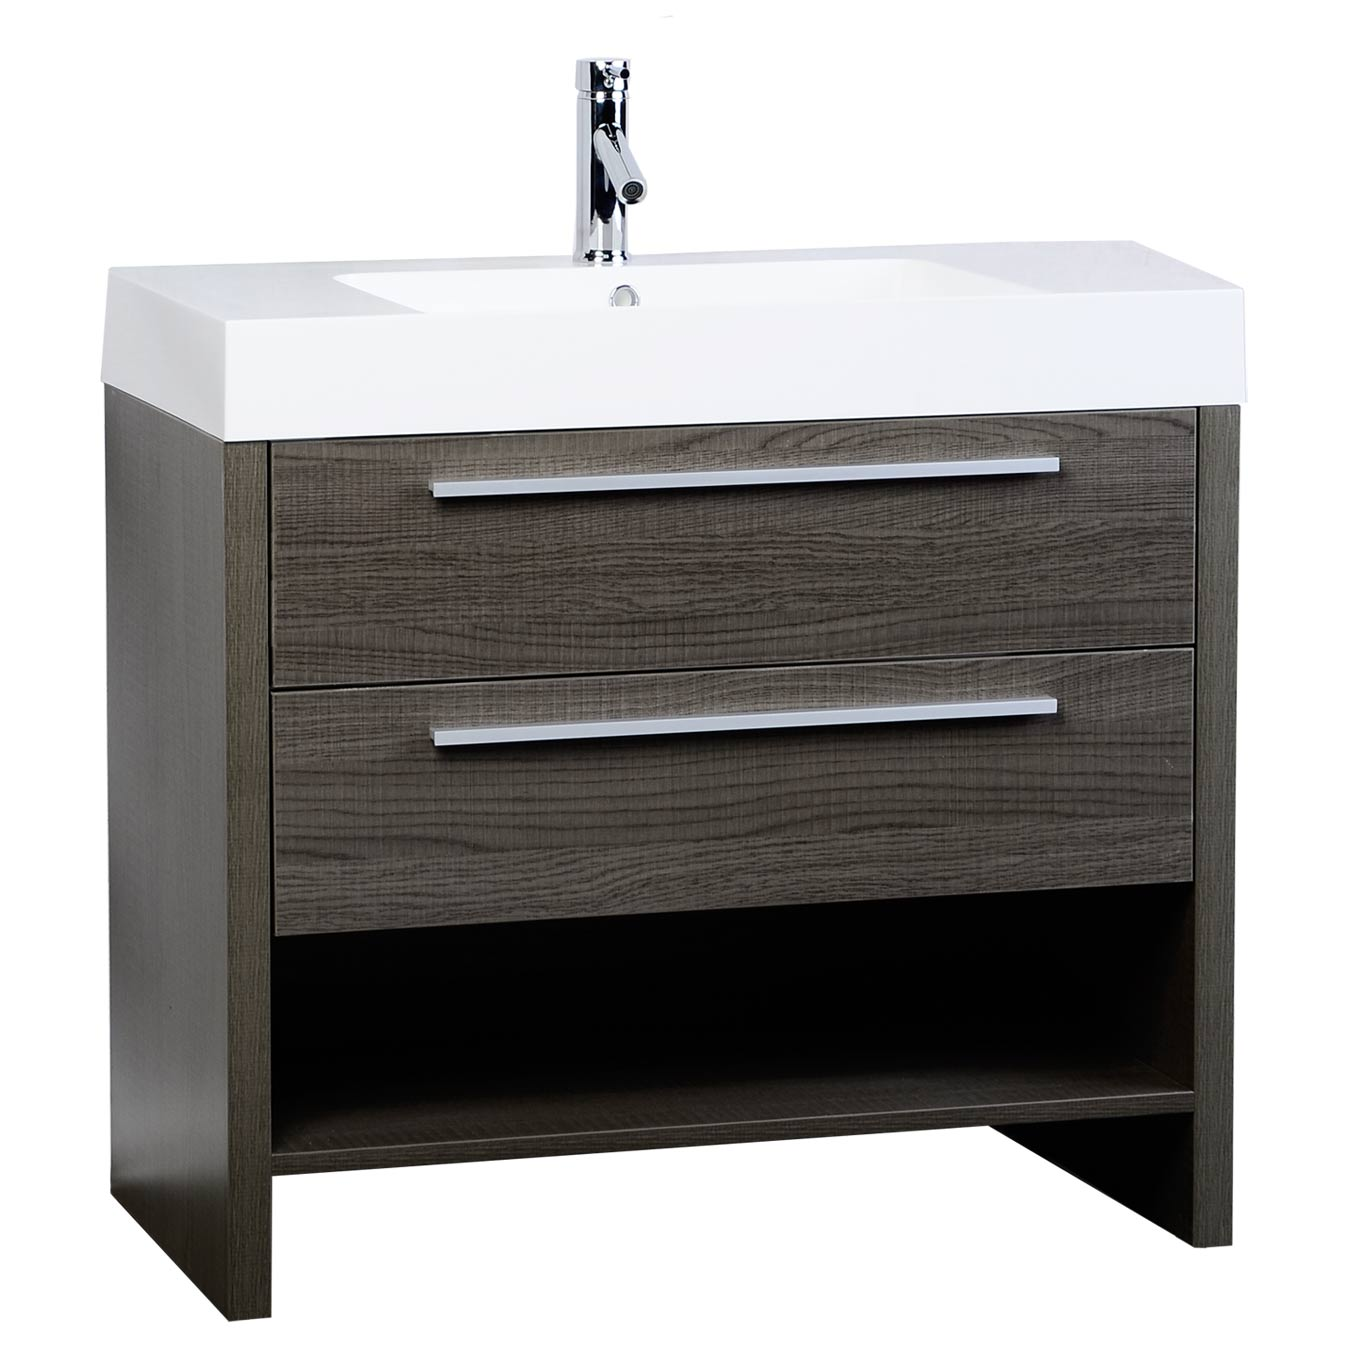 Contemporary bathroom vanities 36 inch - Mula 35 5 Modern Bathroom Vanity Oak Rs L900 Oak